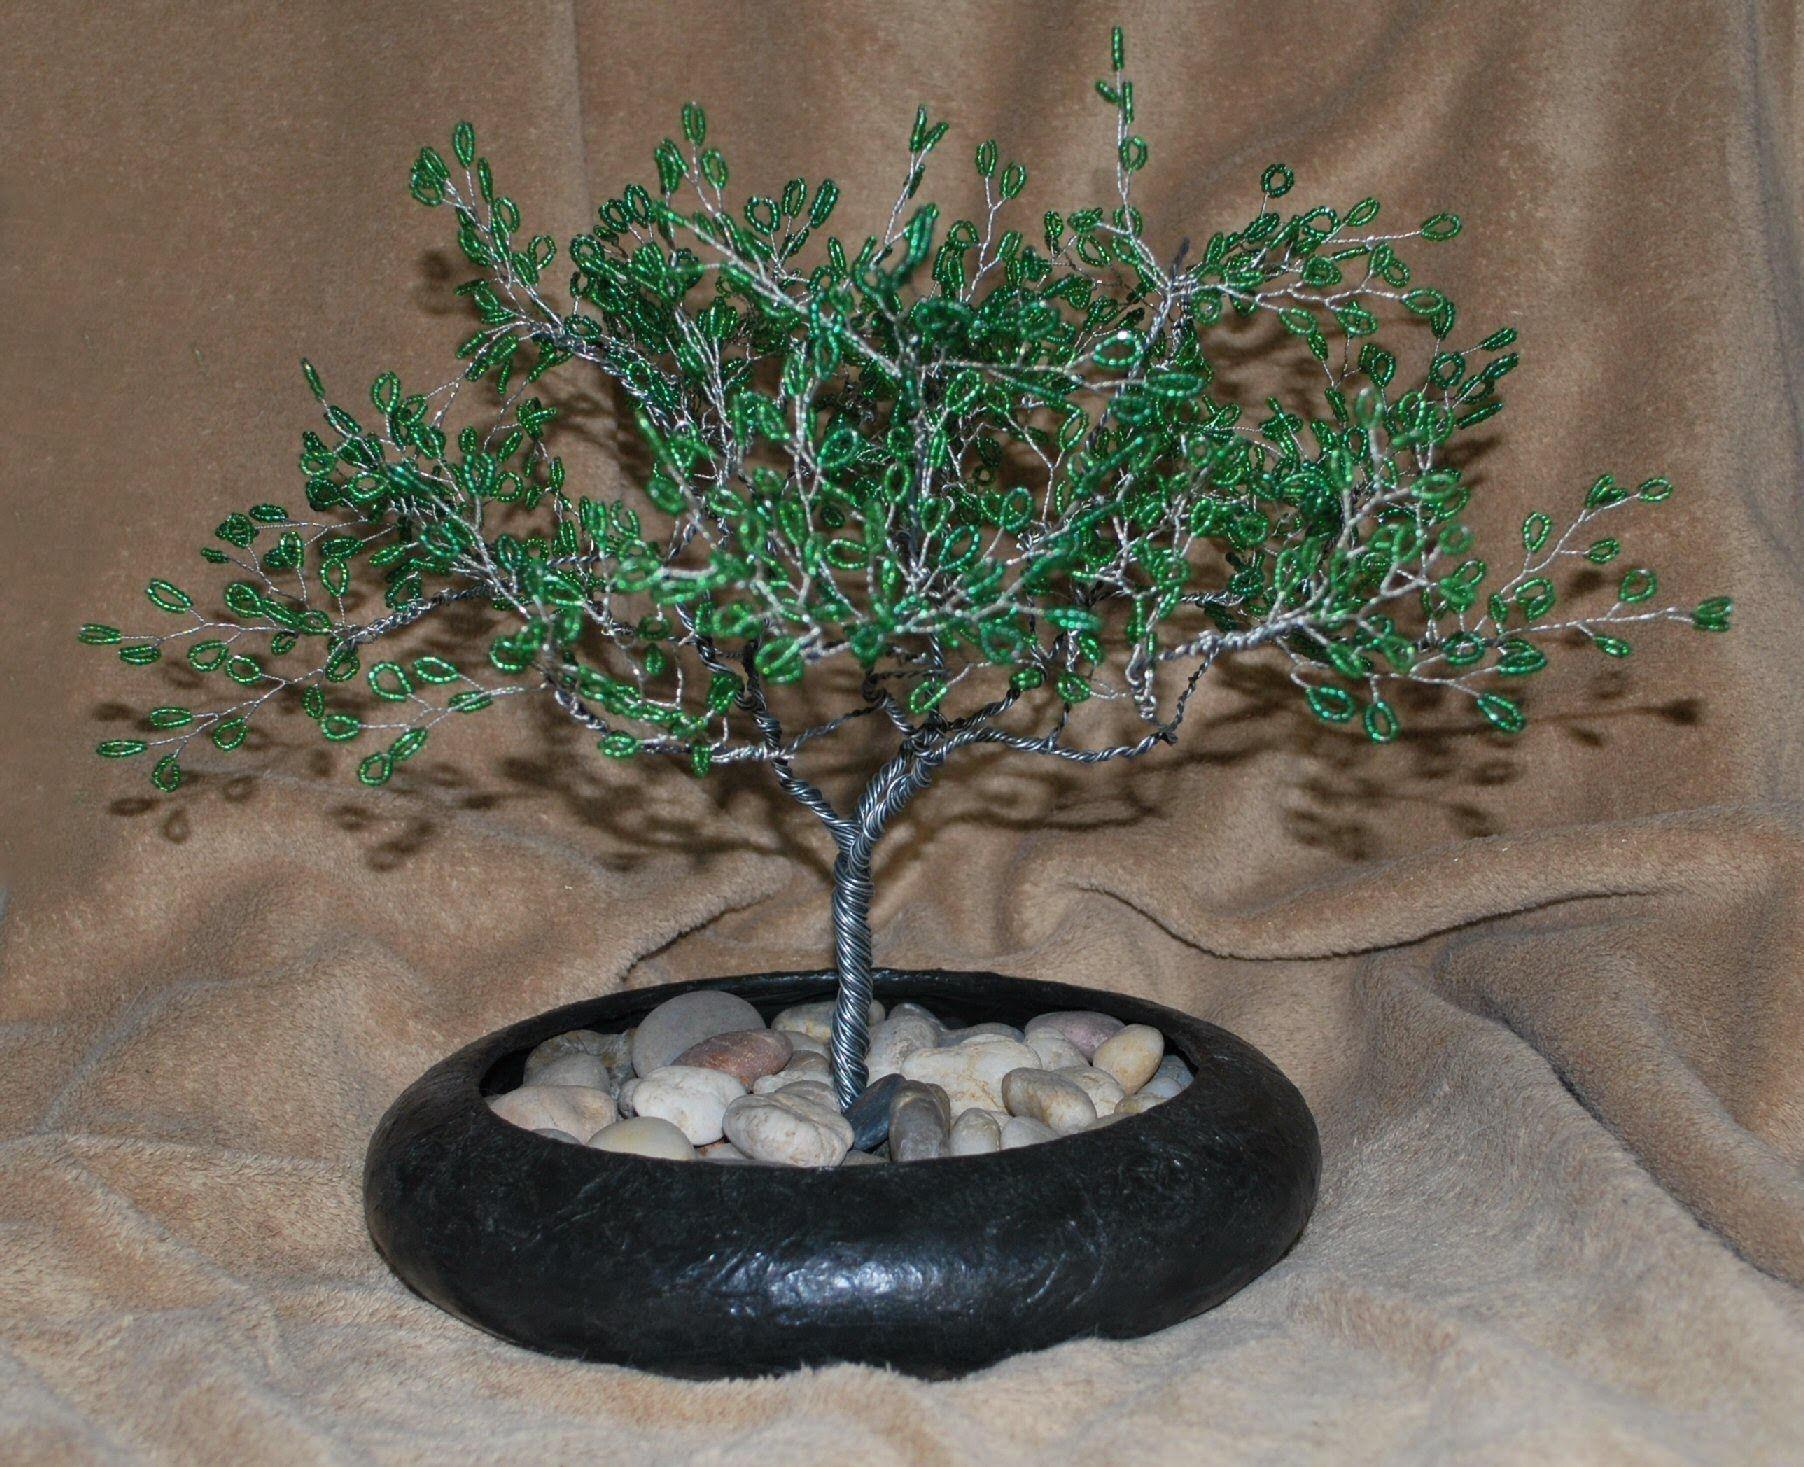 For the tree and branches, I use 20-gauge wire from a roll. For the beaded leaves, I use 26 or 28-gauge wire and seed beads. This is a demonstration of how ...